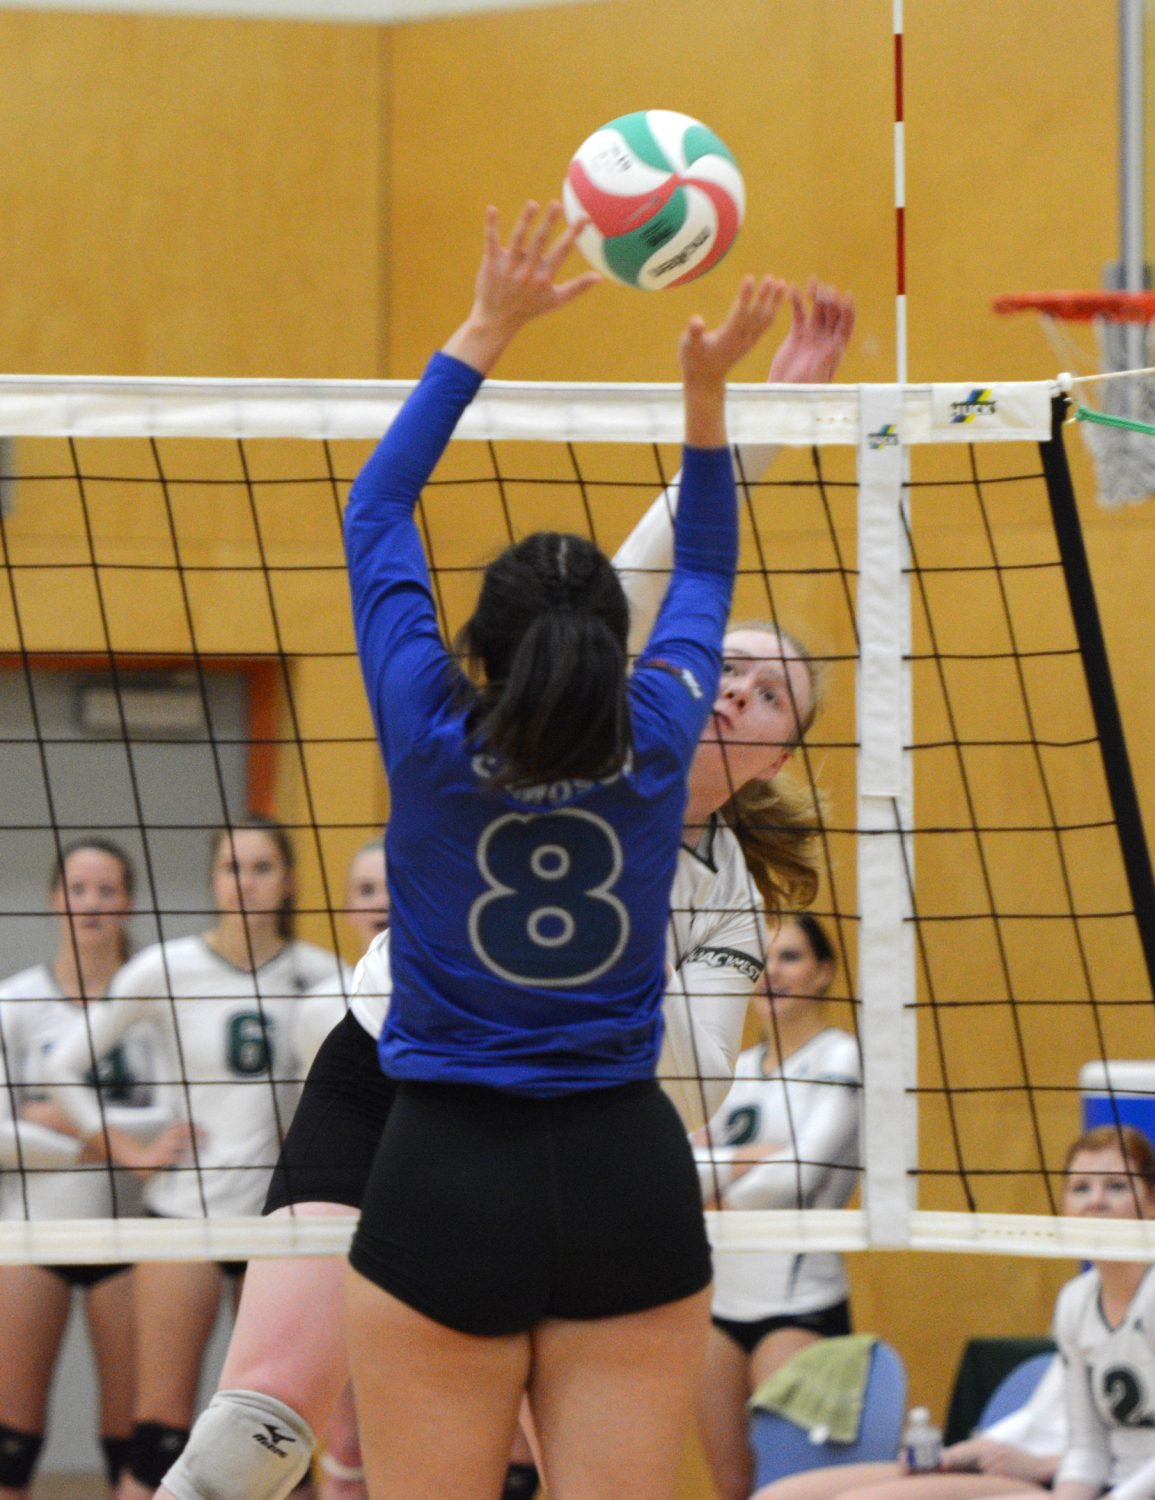 chargers rally past cascades women s volleyball squad ufv cascades. Black Bedroom Furniture Sets. Home Design Ideas